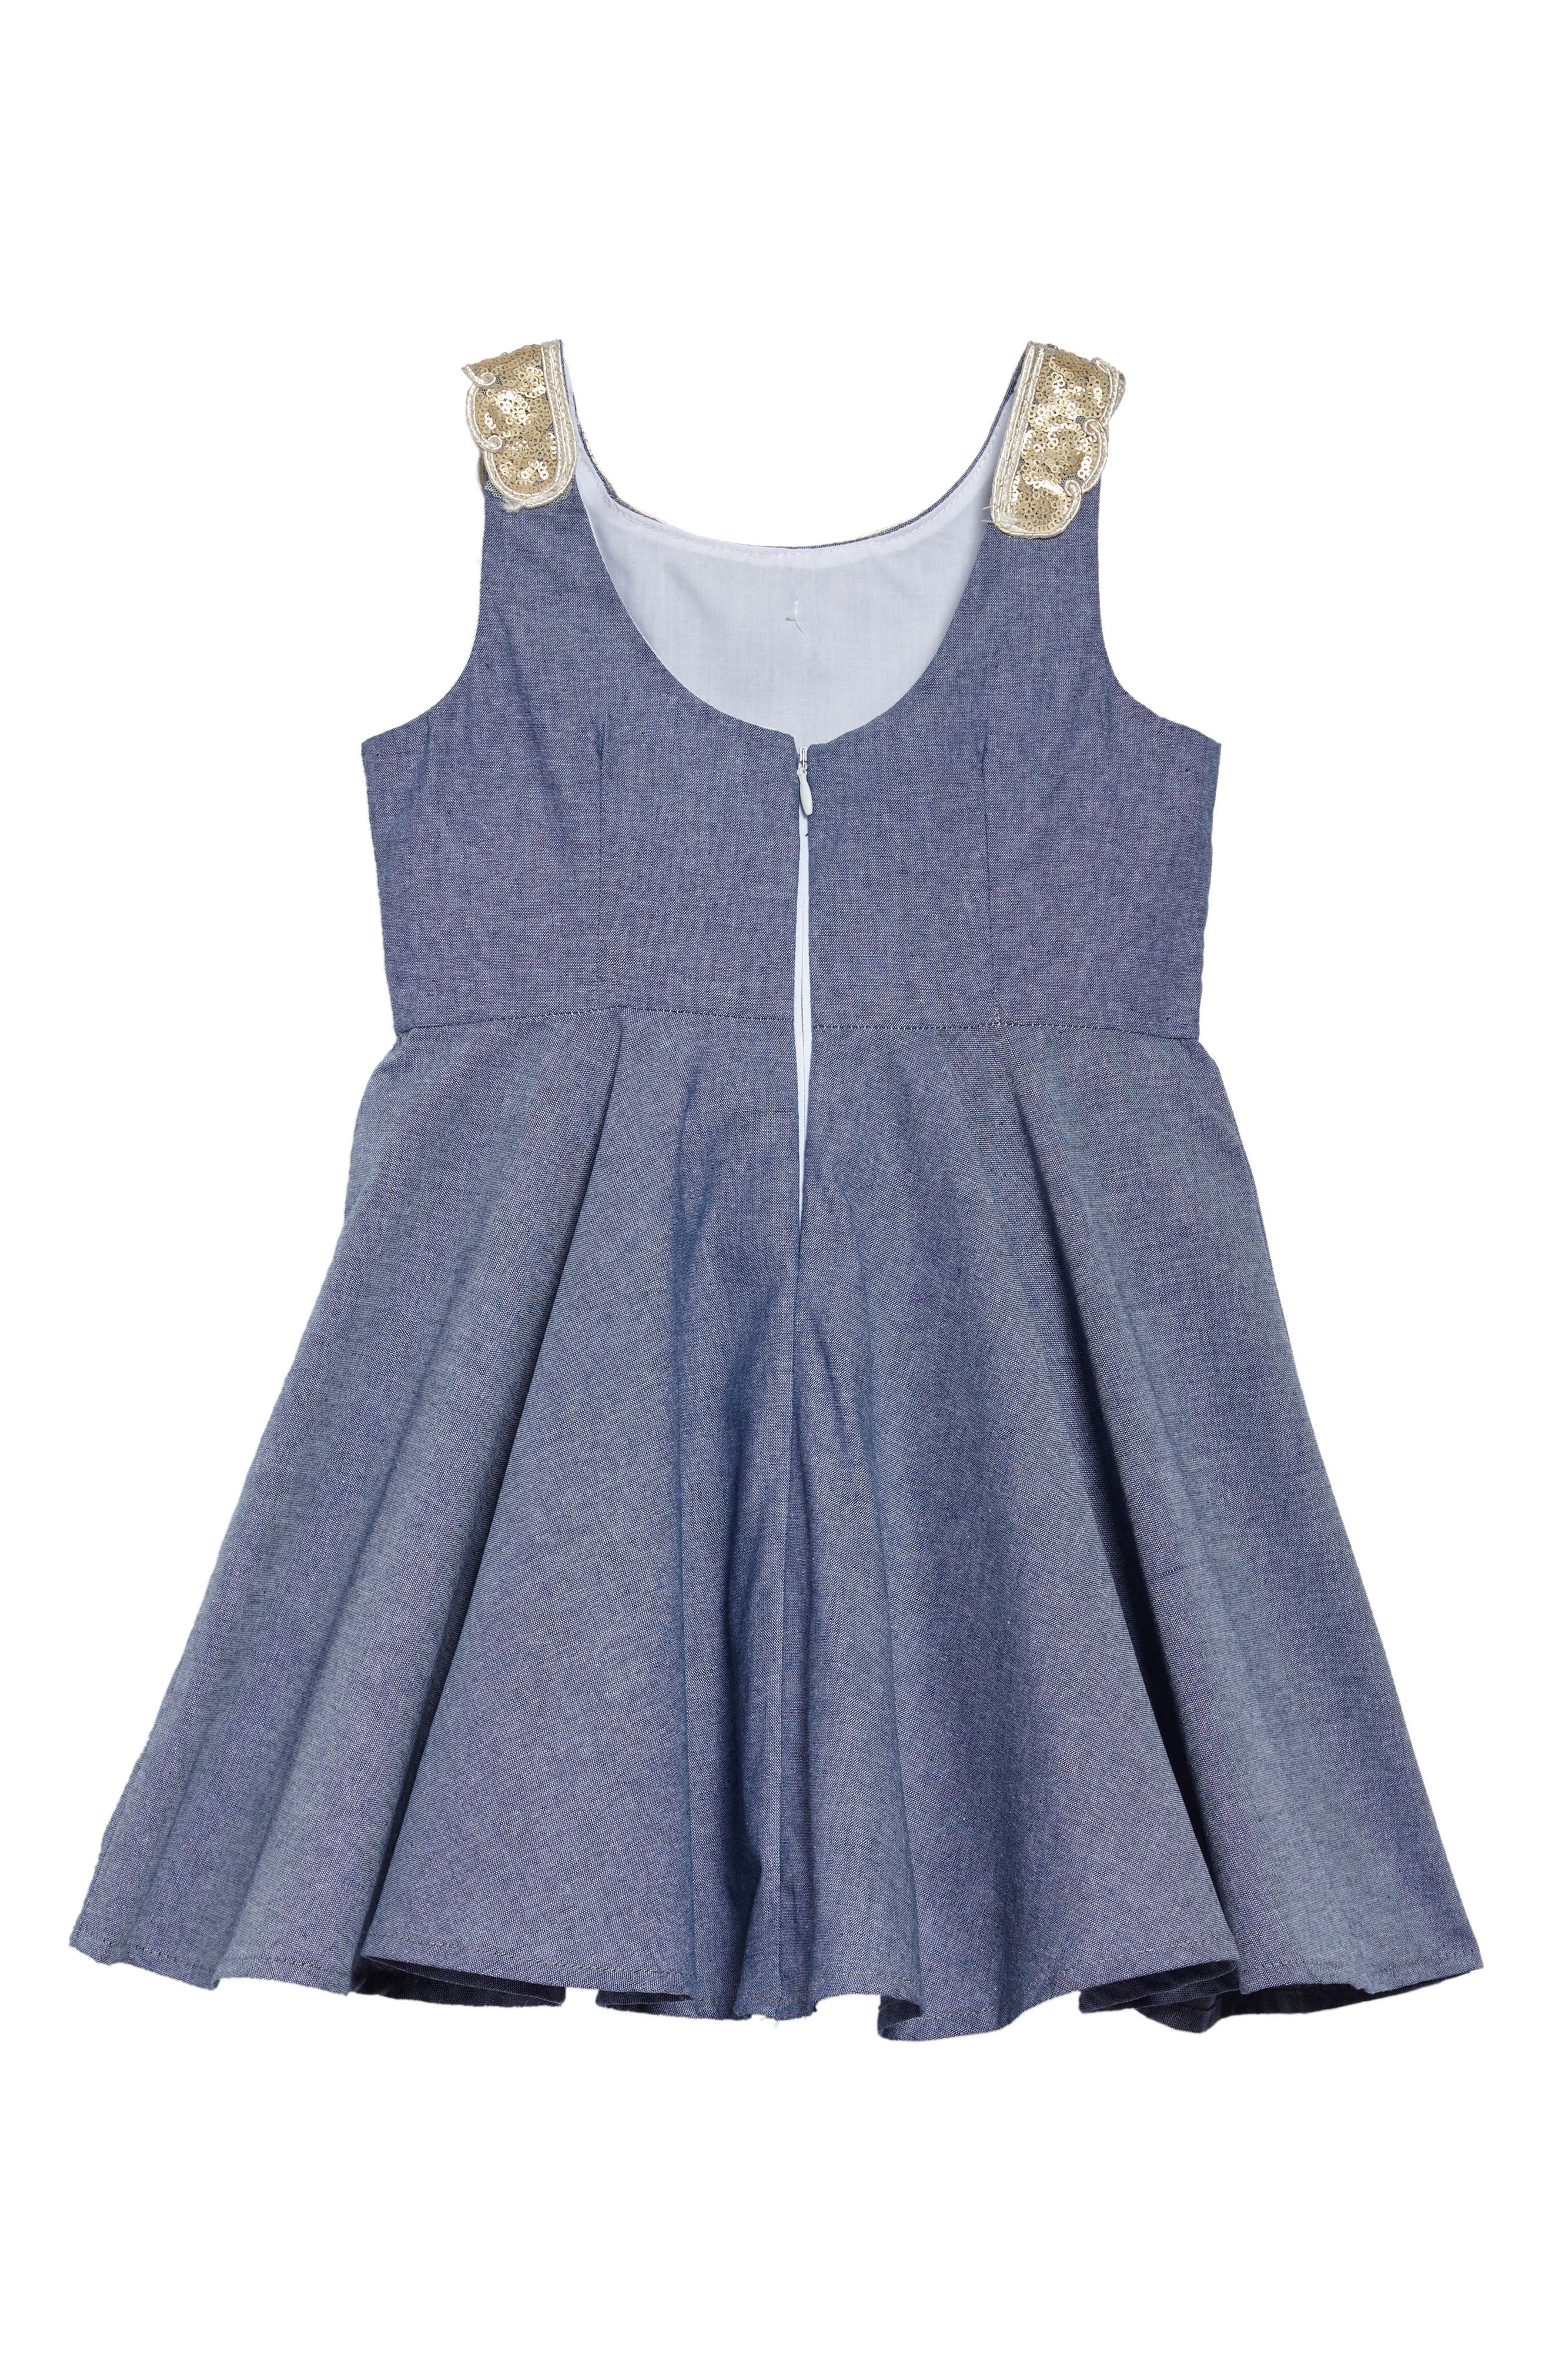 Darcy Chambray Dress,                             Alternate thumbnail 2, color,                             400